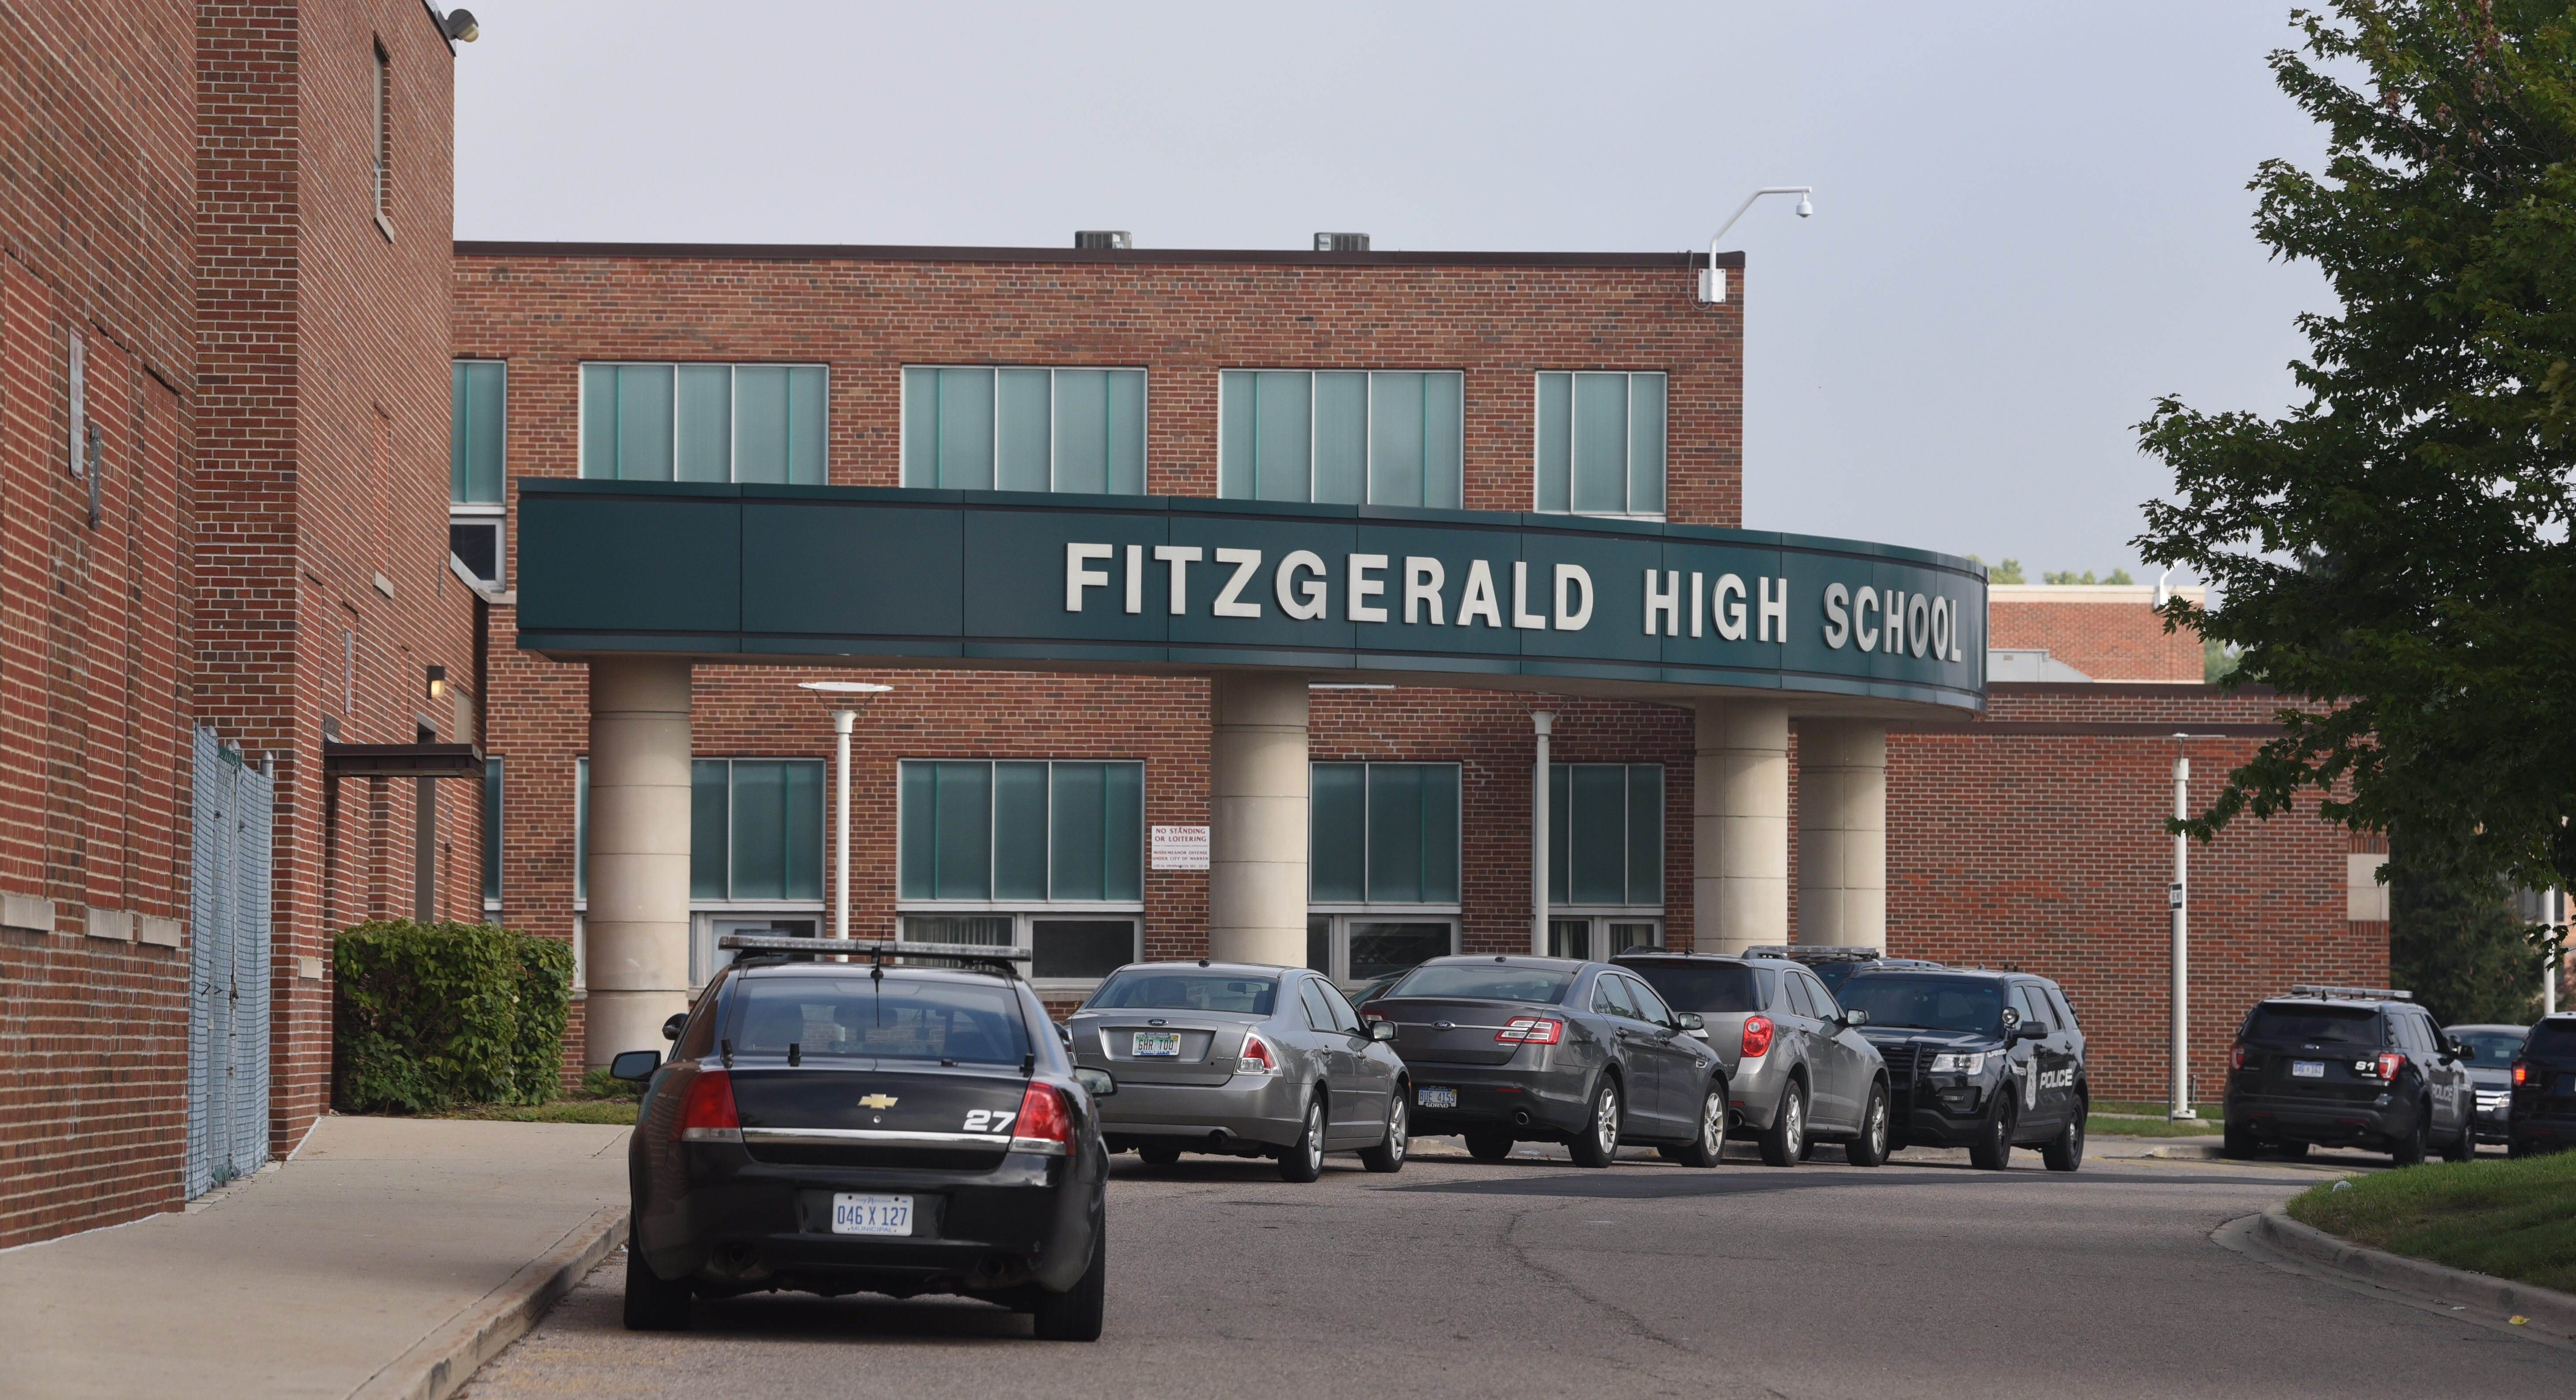 Police are at Fitzgerald High School in Warren after a 16-year-old girl was stabbed in an apparent fight on Sept. 12, 2018